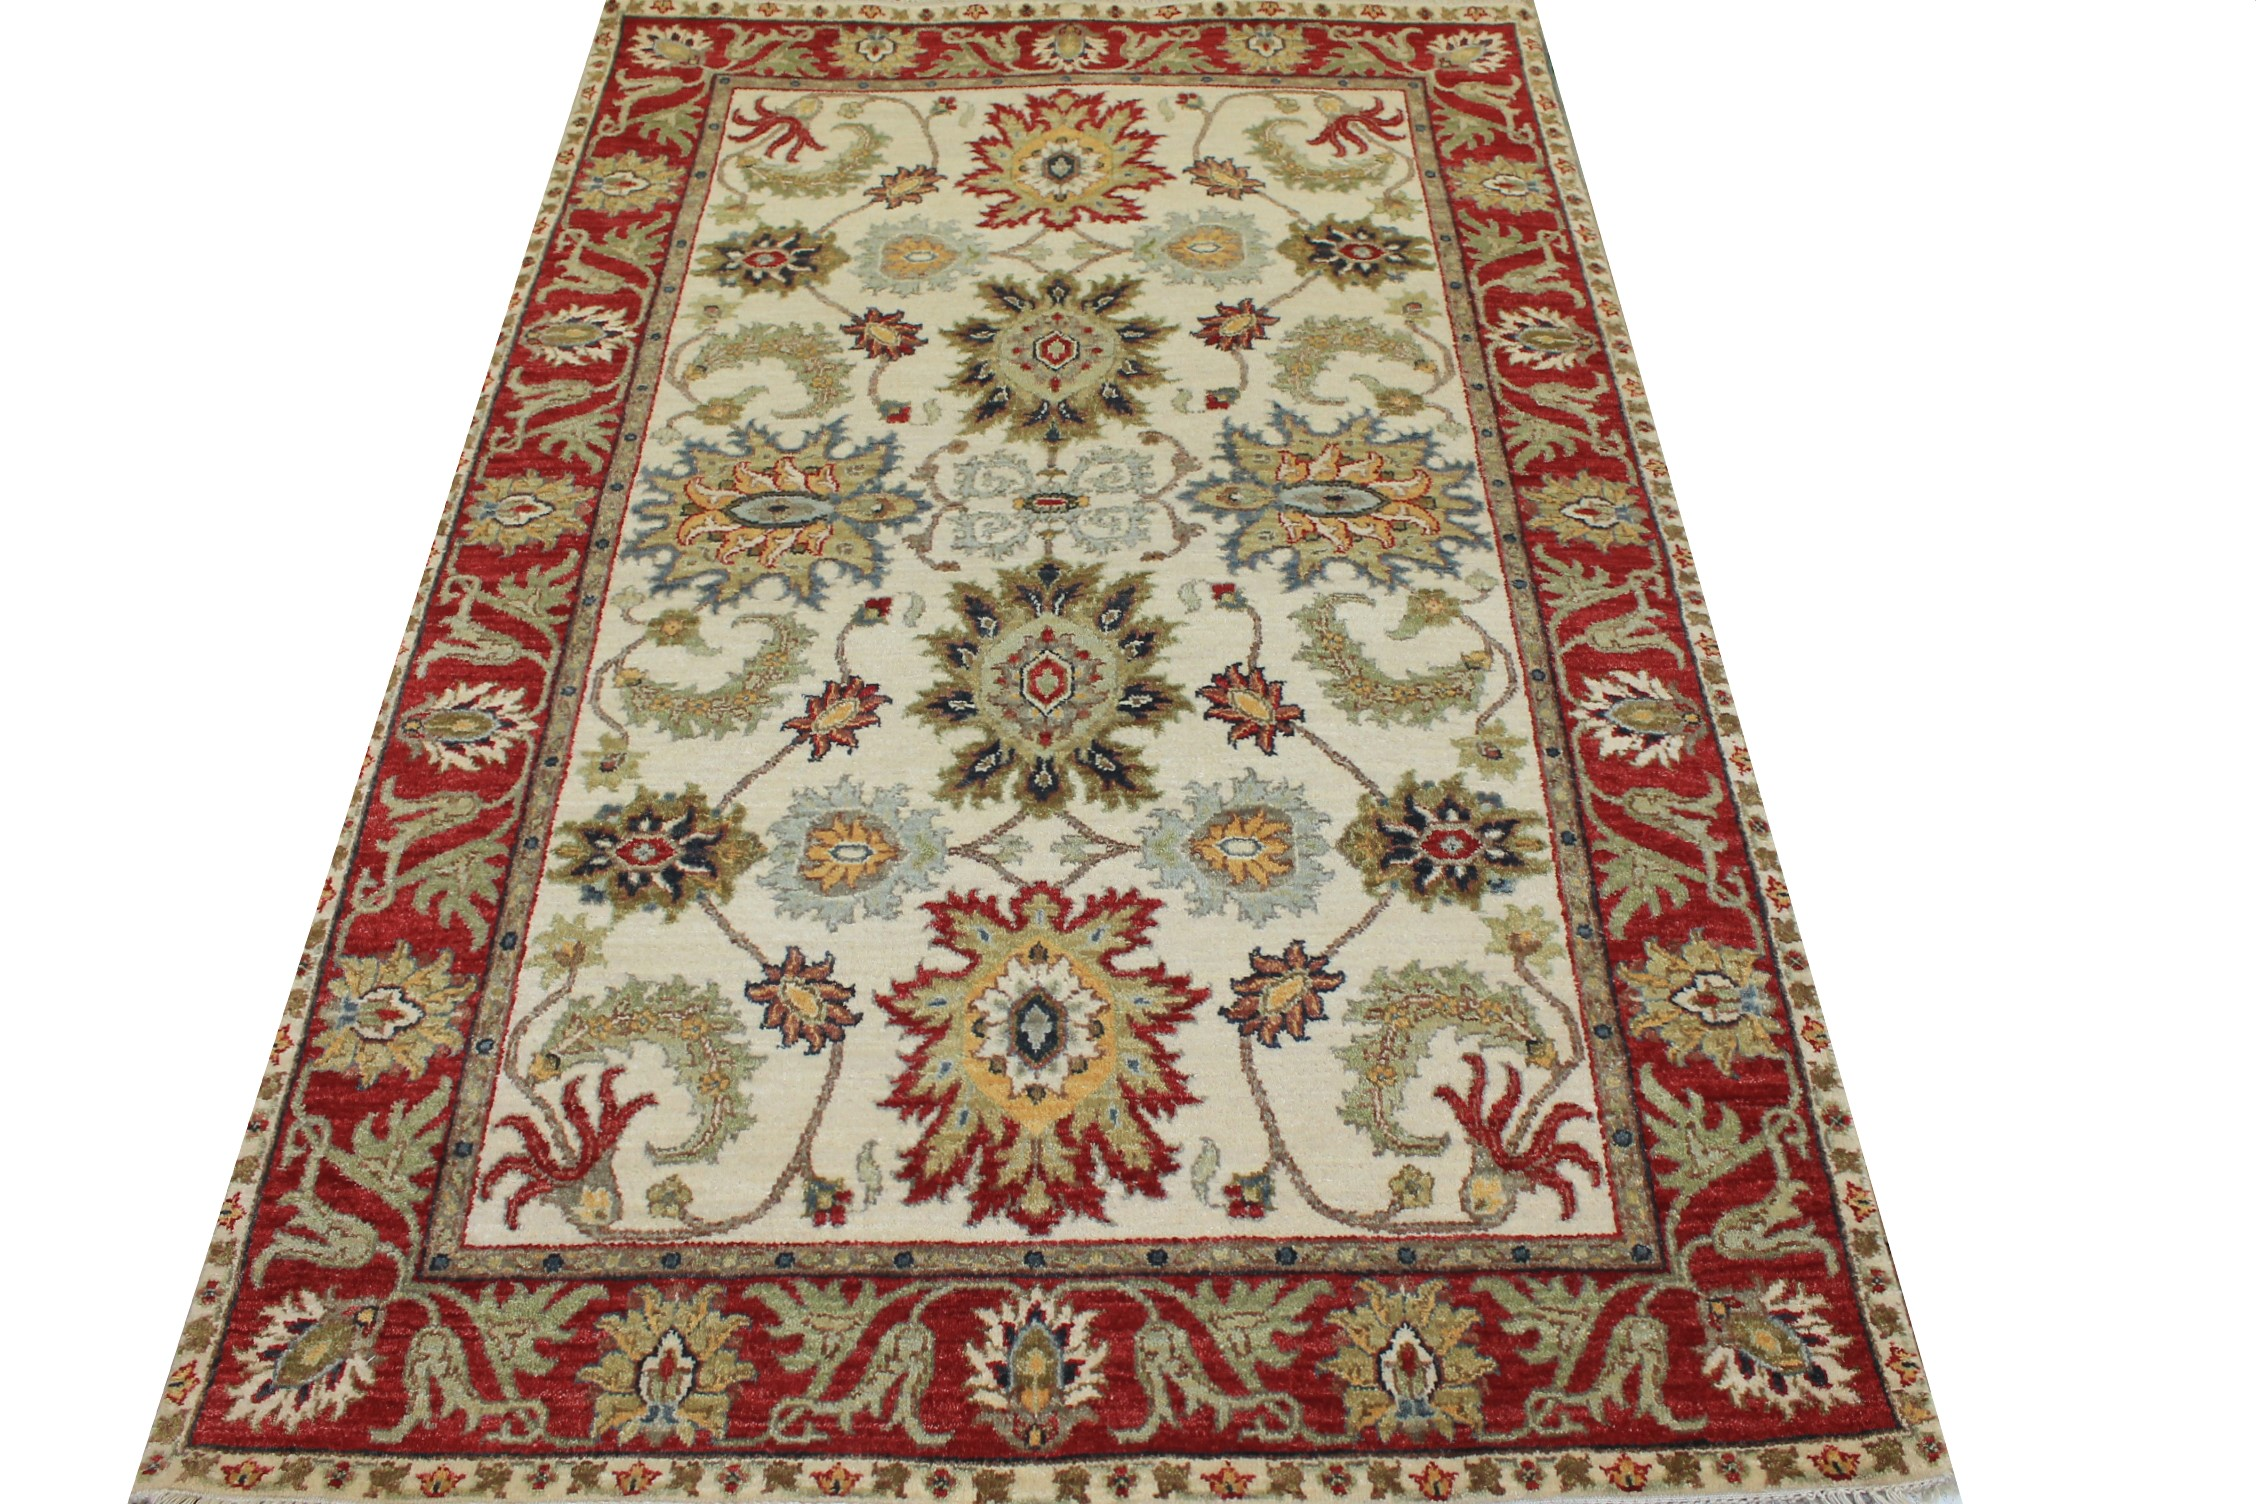 4x6 Traditional Hand Knotted Wool Area Rug - MR024182